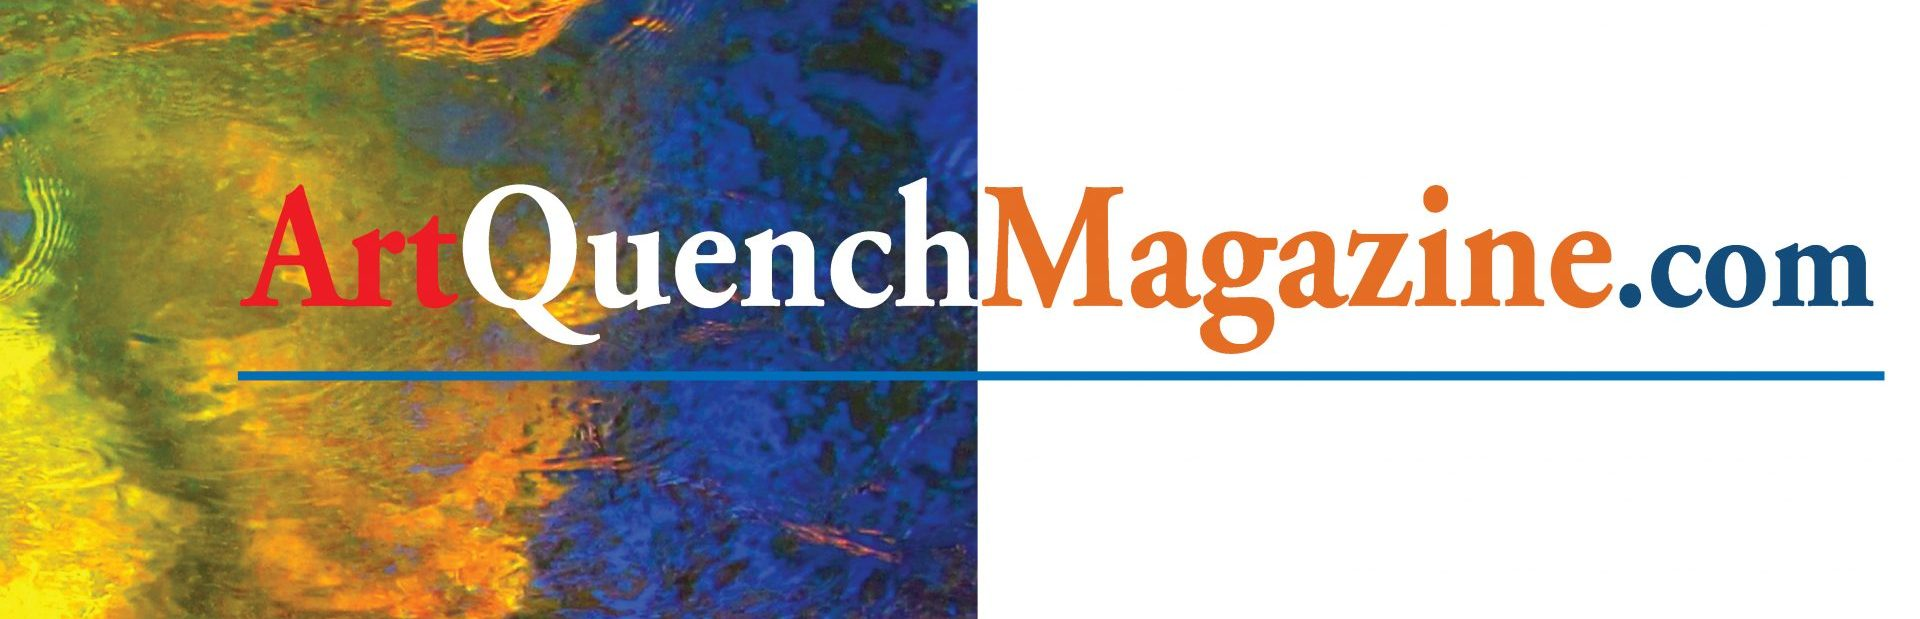 cropped-cropped-artquench-magazine-logo-2-large-01-002.jpg